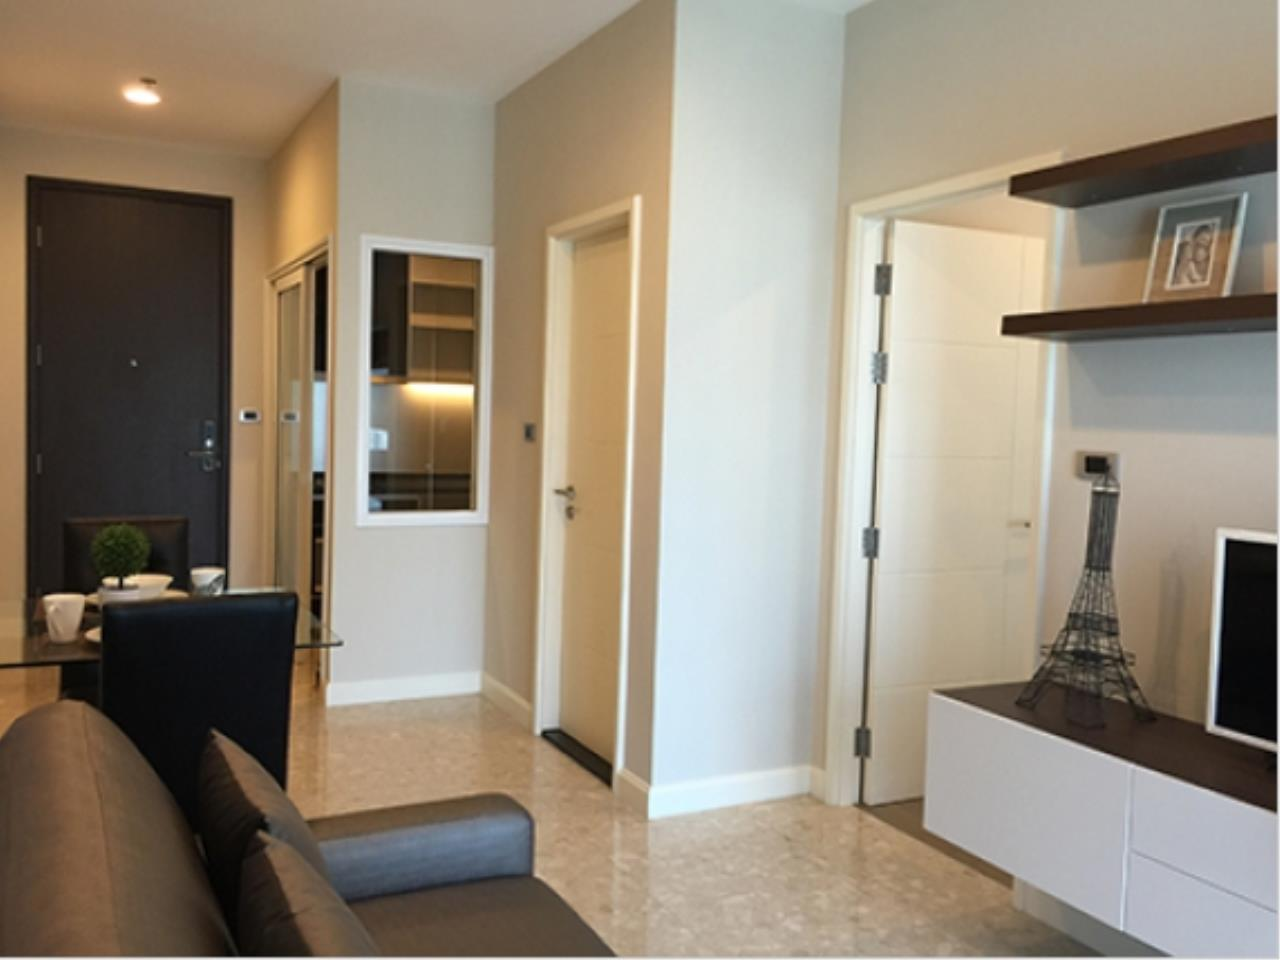 AAP Capital Agency's The Crest - Condominium for rent 5